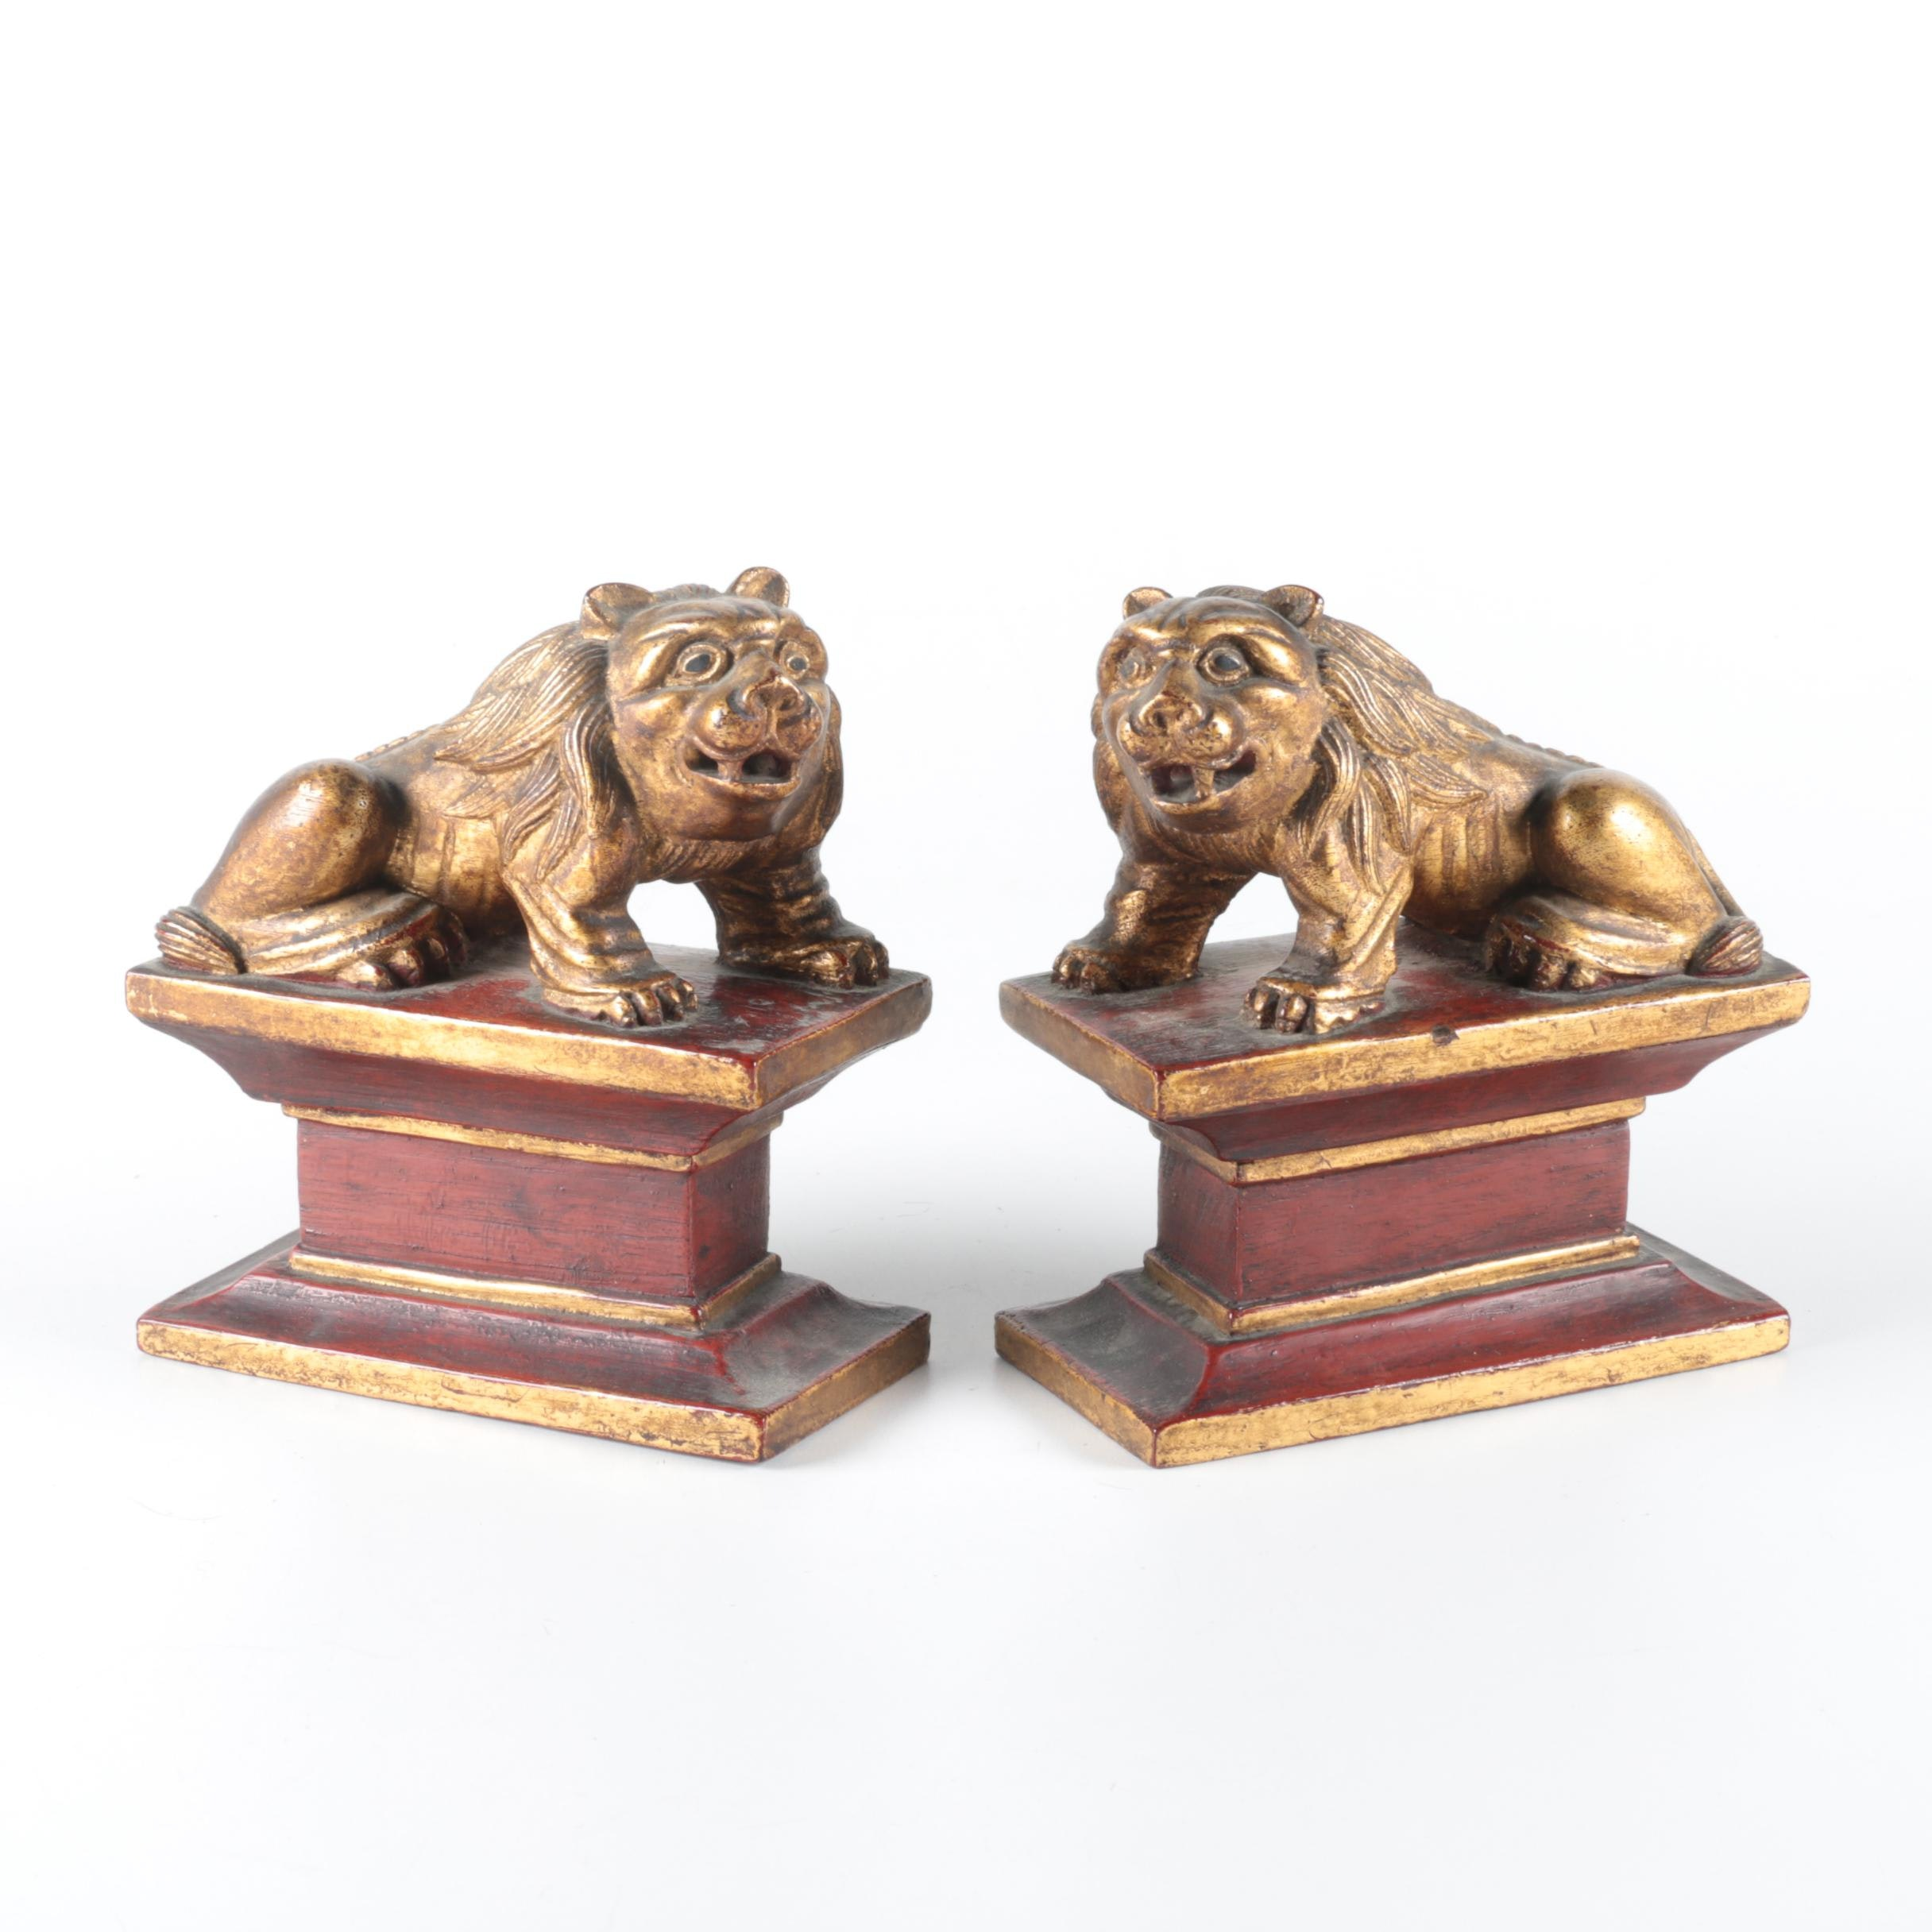 Early 20th-Century Chinese Carved Wooden Lion Bookends